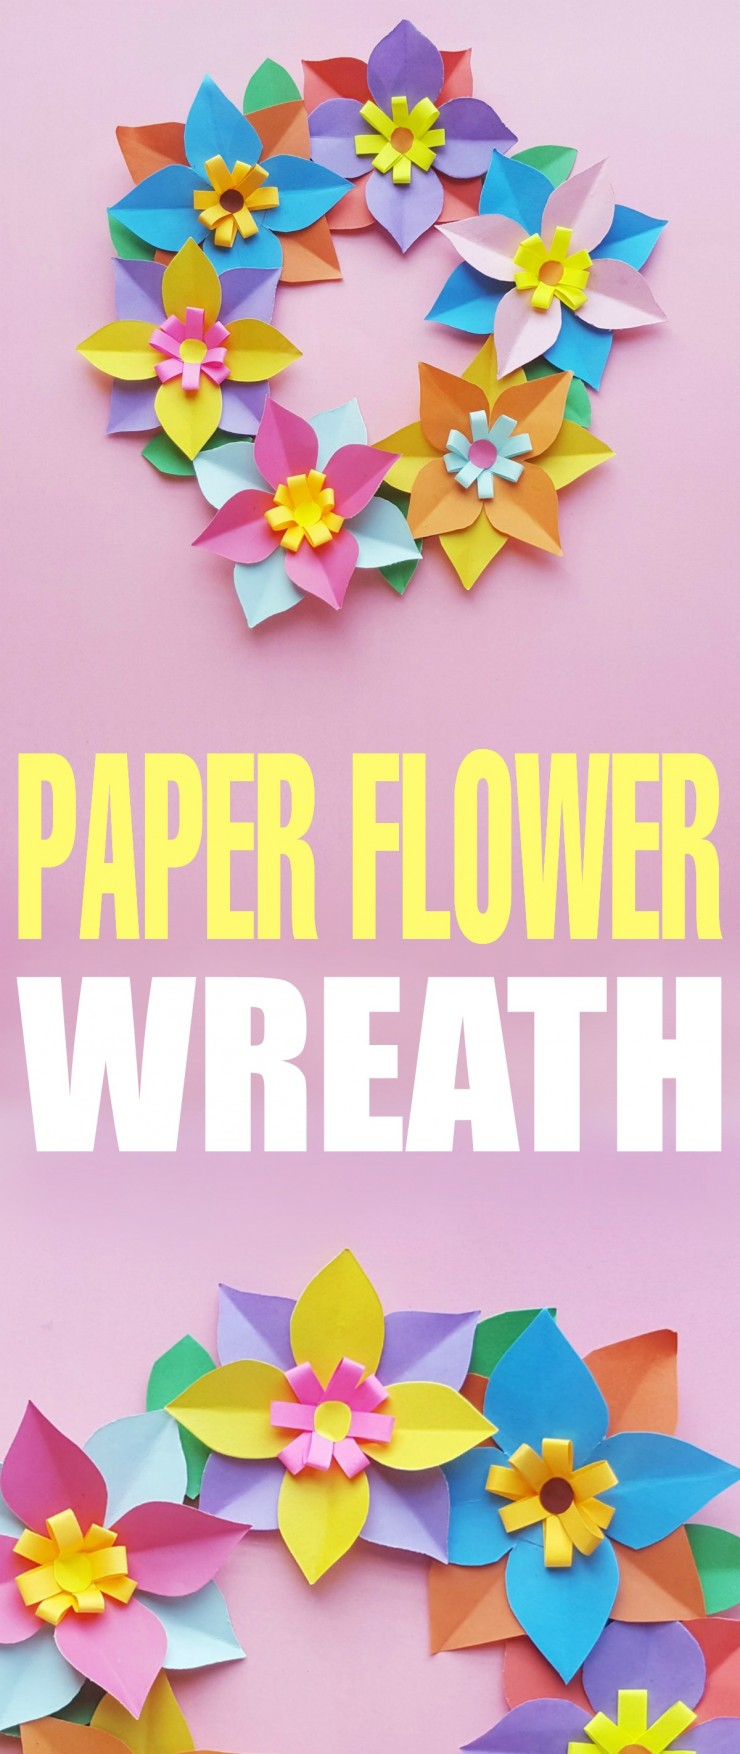 This paper flower wreath is a fun spring or summer craft for kids.  Use the free printable template to create the flowers or allow your kids to design their very own flowers for a unique look all of their own!